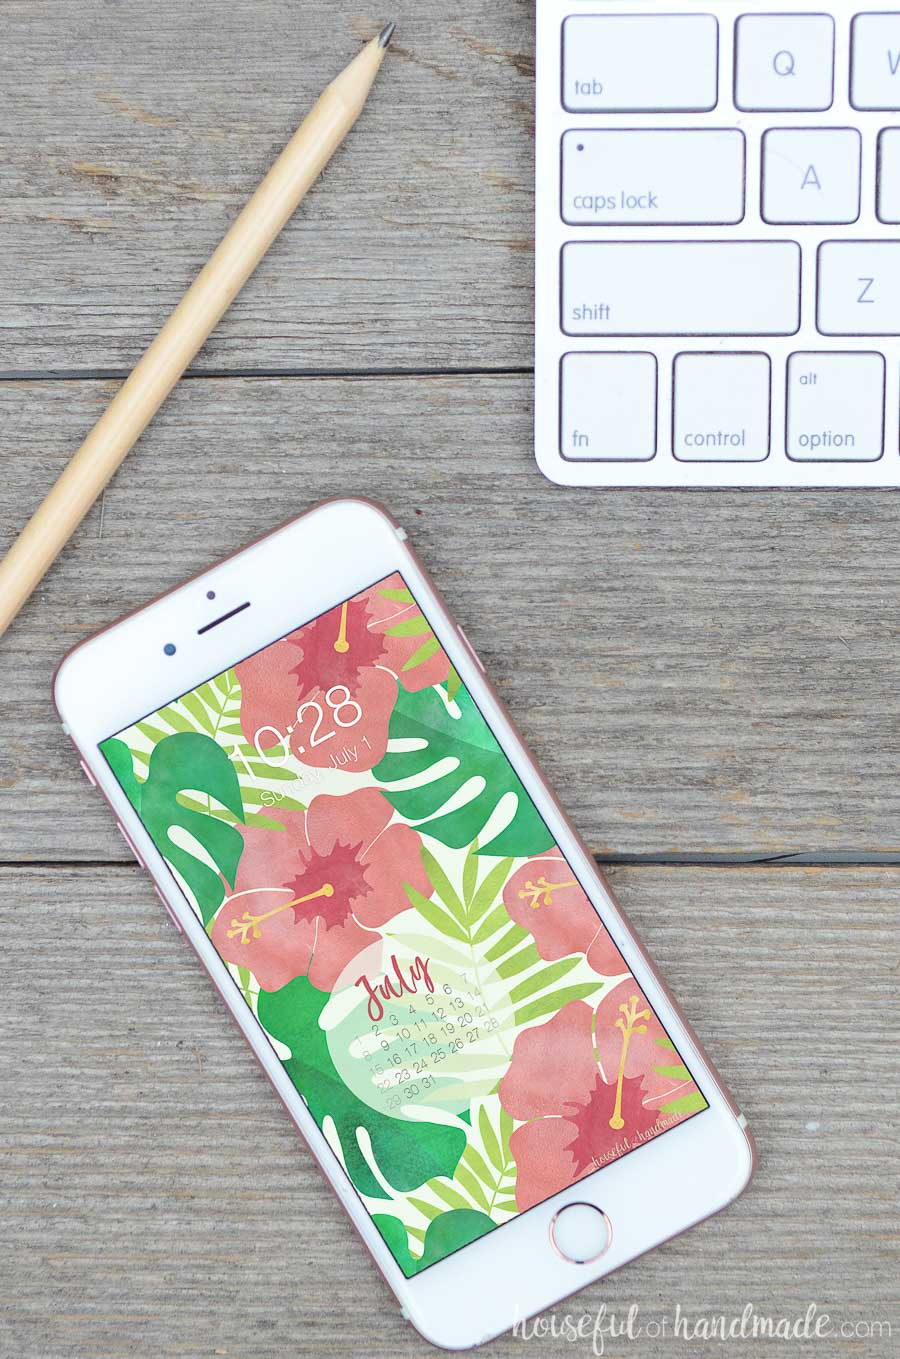 Stay organized this summer with these free digital backgrounds. The July 2018 calendar is perfect for letting you see the month at a glance without unlocking your smartphone. Housefulofhandmade.com